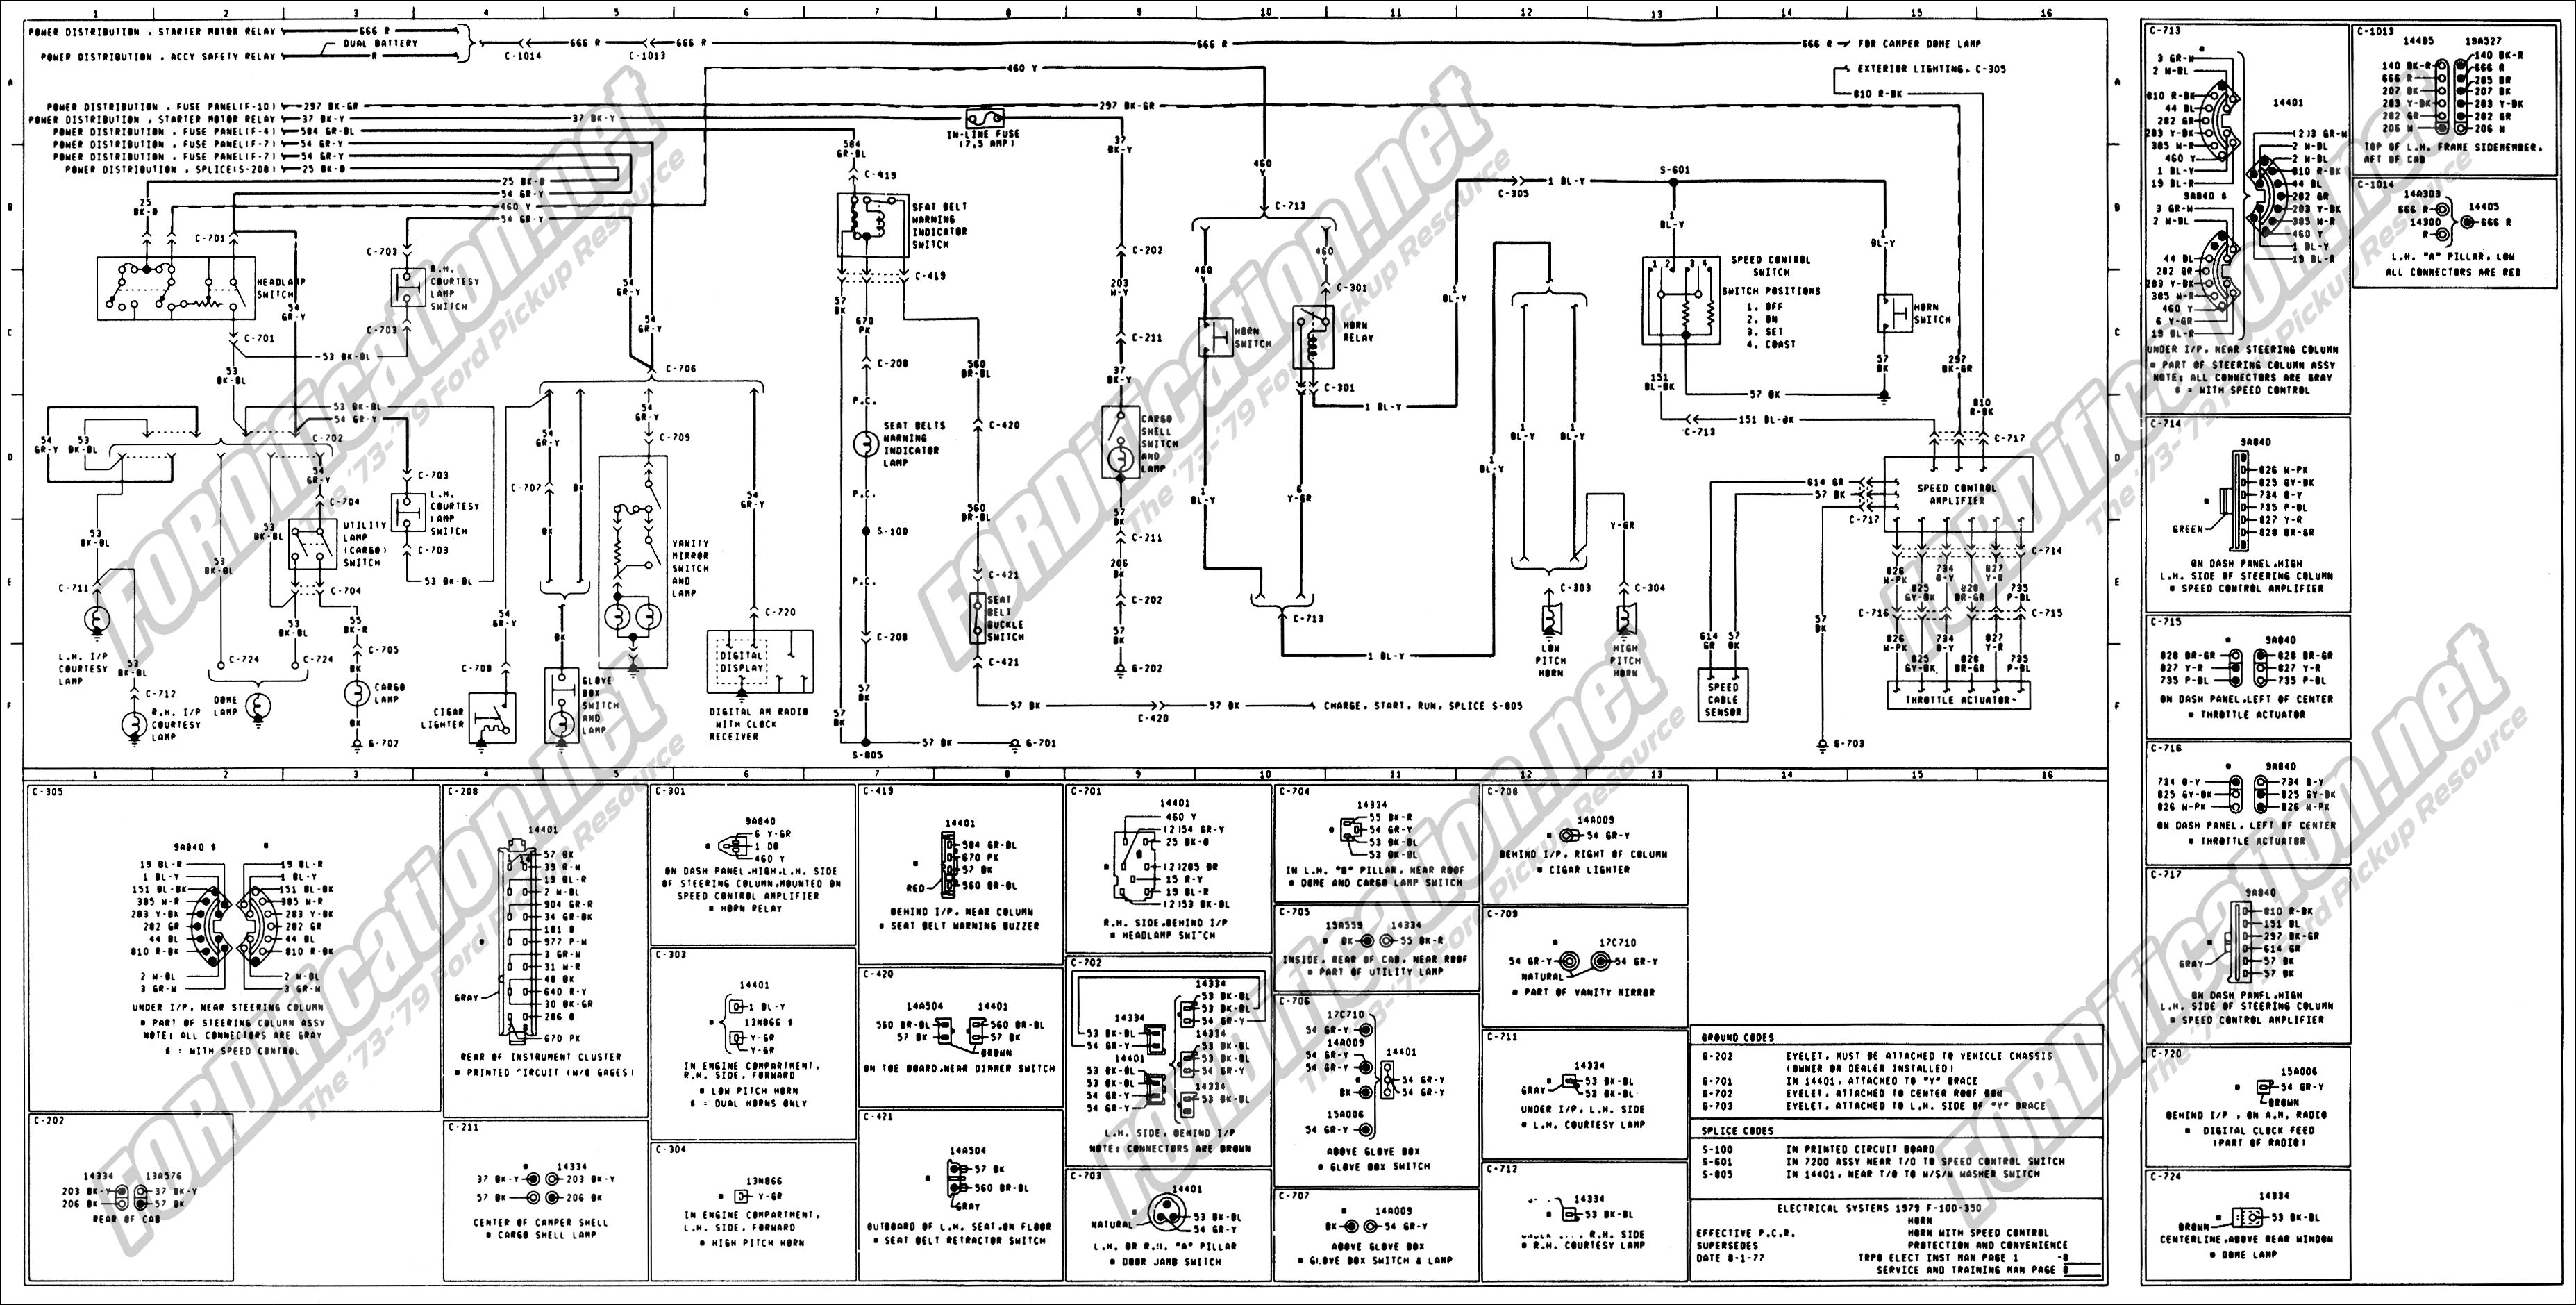 wiring_79master_8of9 1997 f 250 wiring diagram factory to after market stereo 1979 ford radio wiring diagram at n-0.co